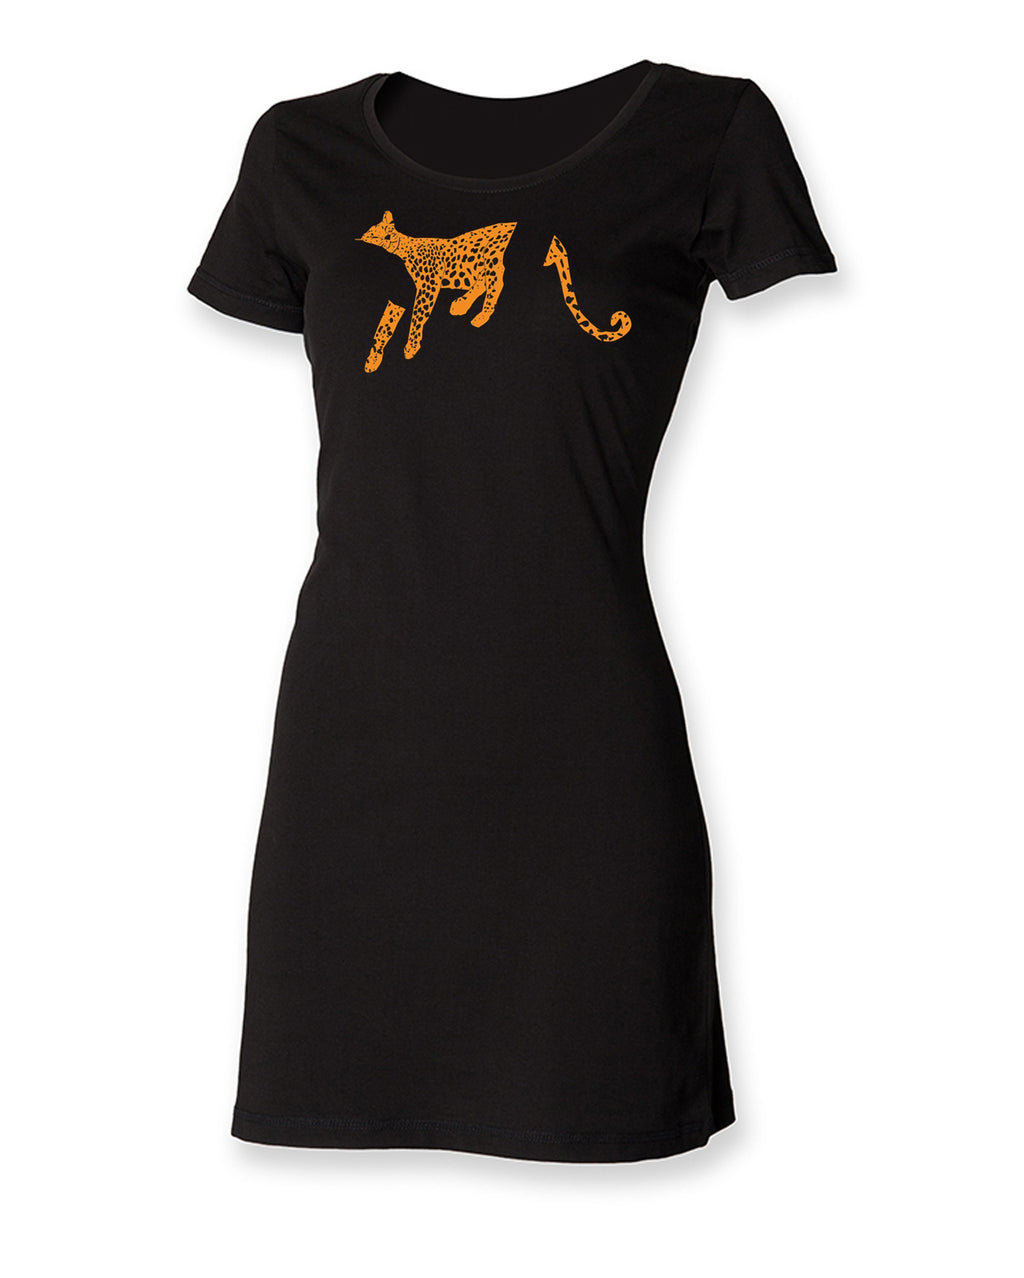 Dress - Leopard T-shirt Dress